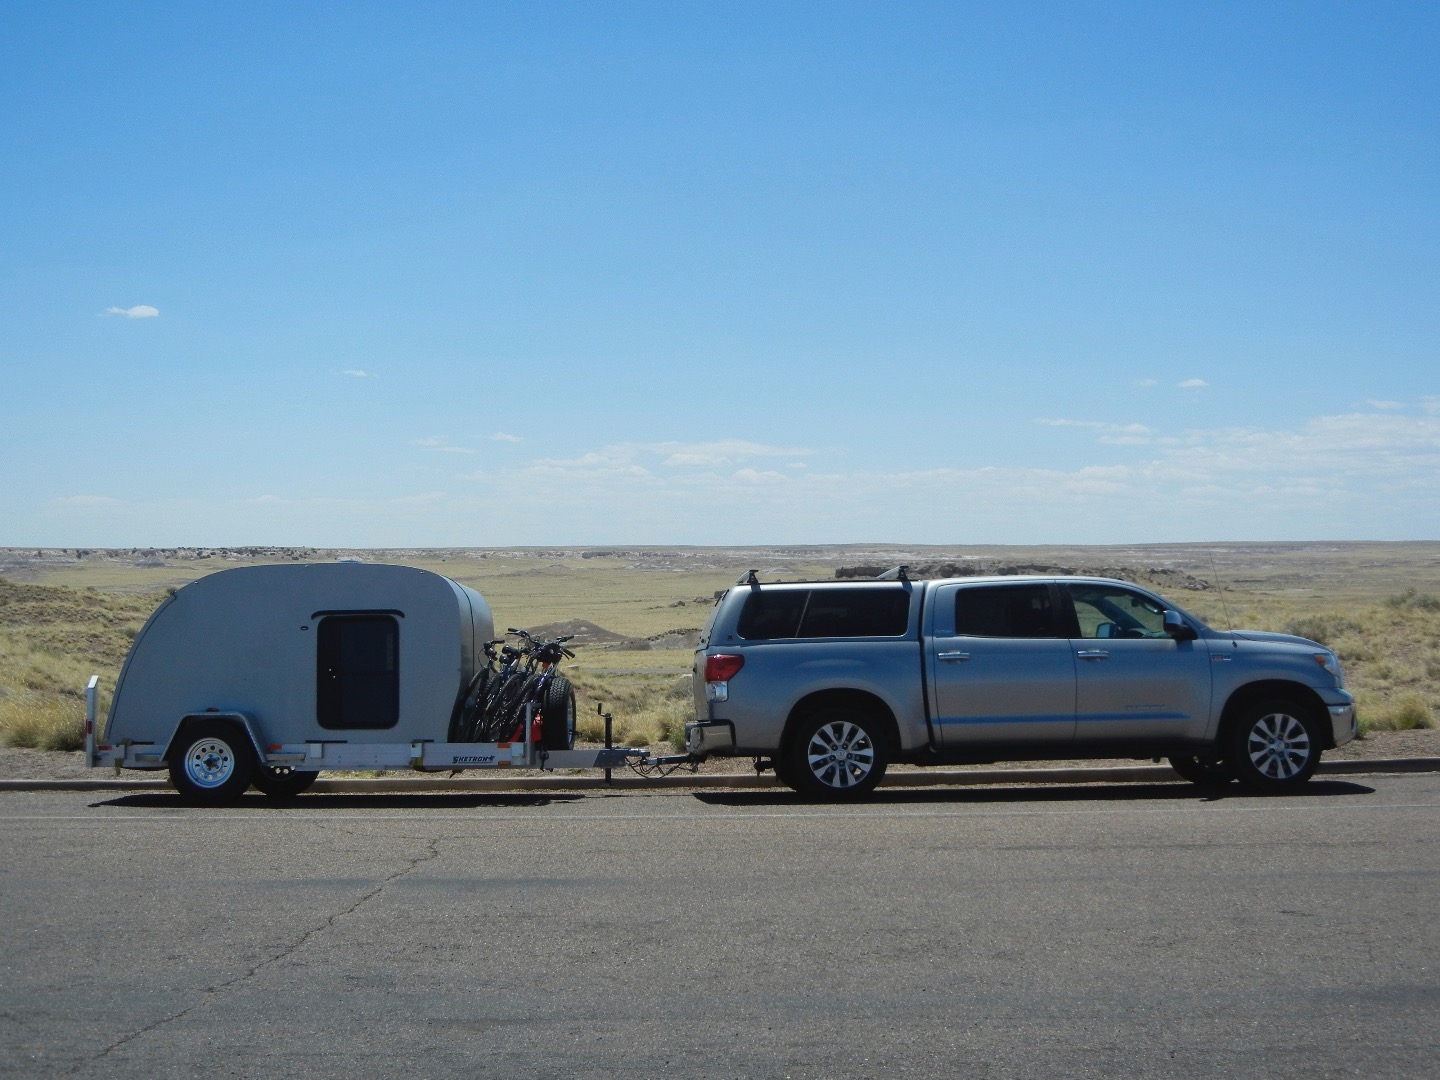 Picture of Teardrop Trailer - Boxes Within a Box